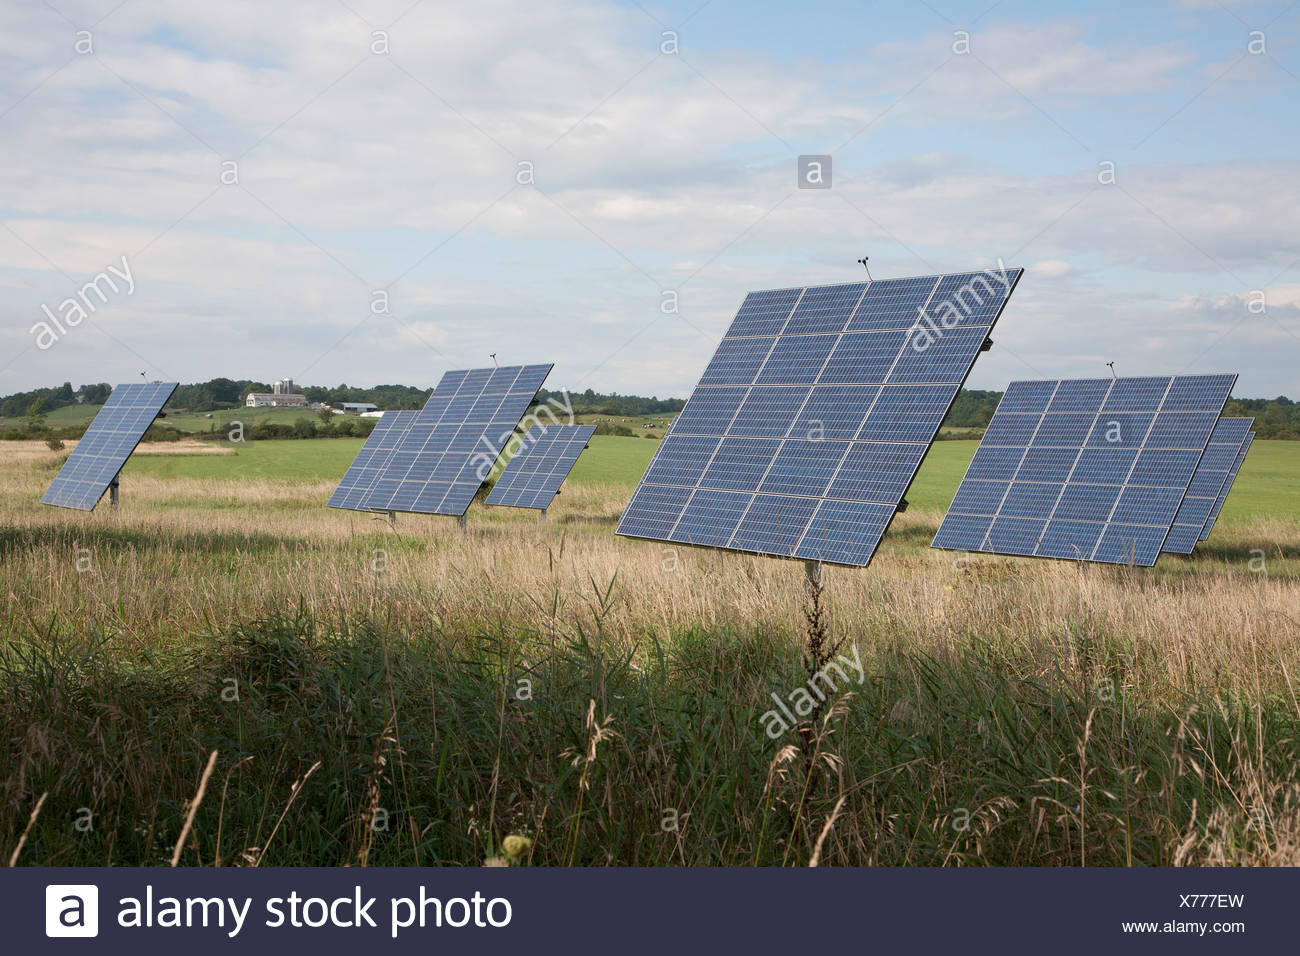 Solar panels in a field - Stock Image